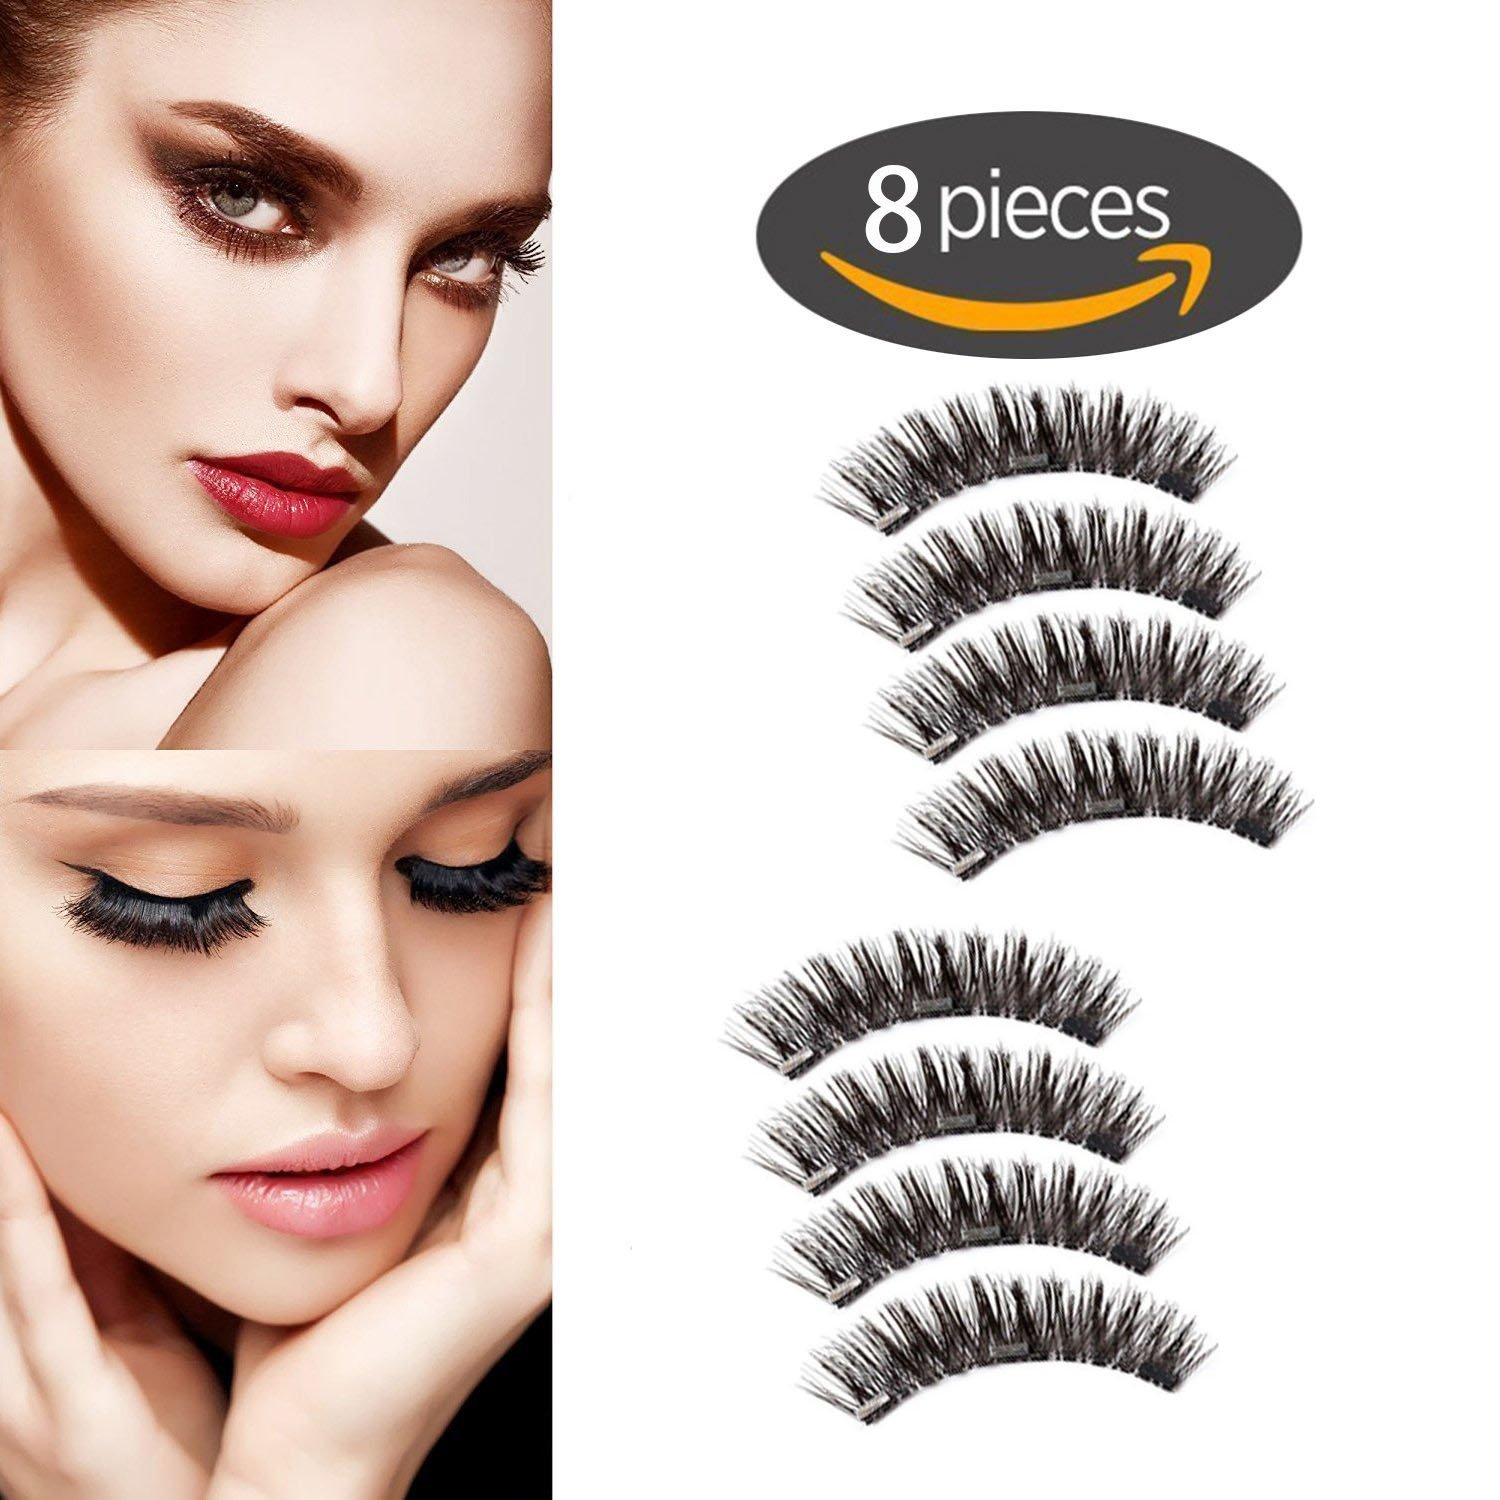 6f90c270801 Amazon.com : Magnet Eyelashes-Dual Magnetic False Eyelashes with NO GLUE 3D  Fiber Reusable Best Fake Lashes Extension for Natural Look, Perfect for  Deep Set ...